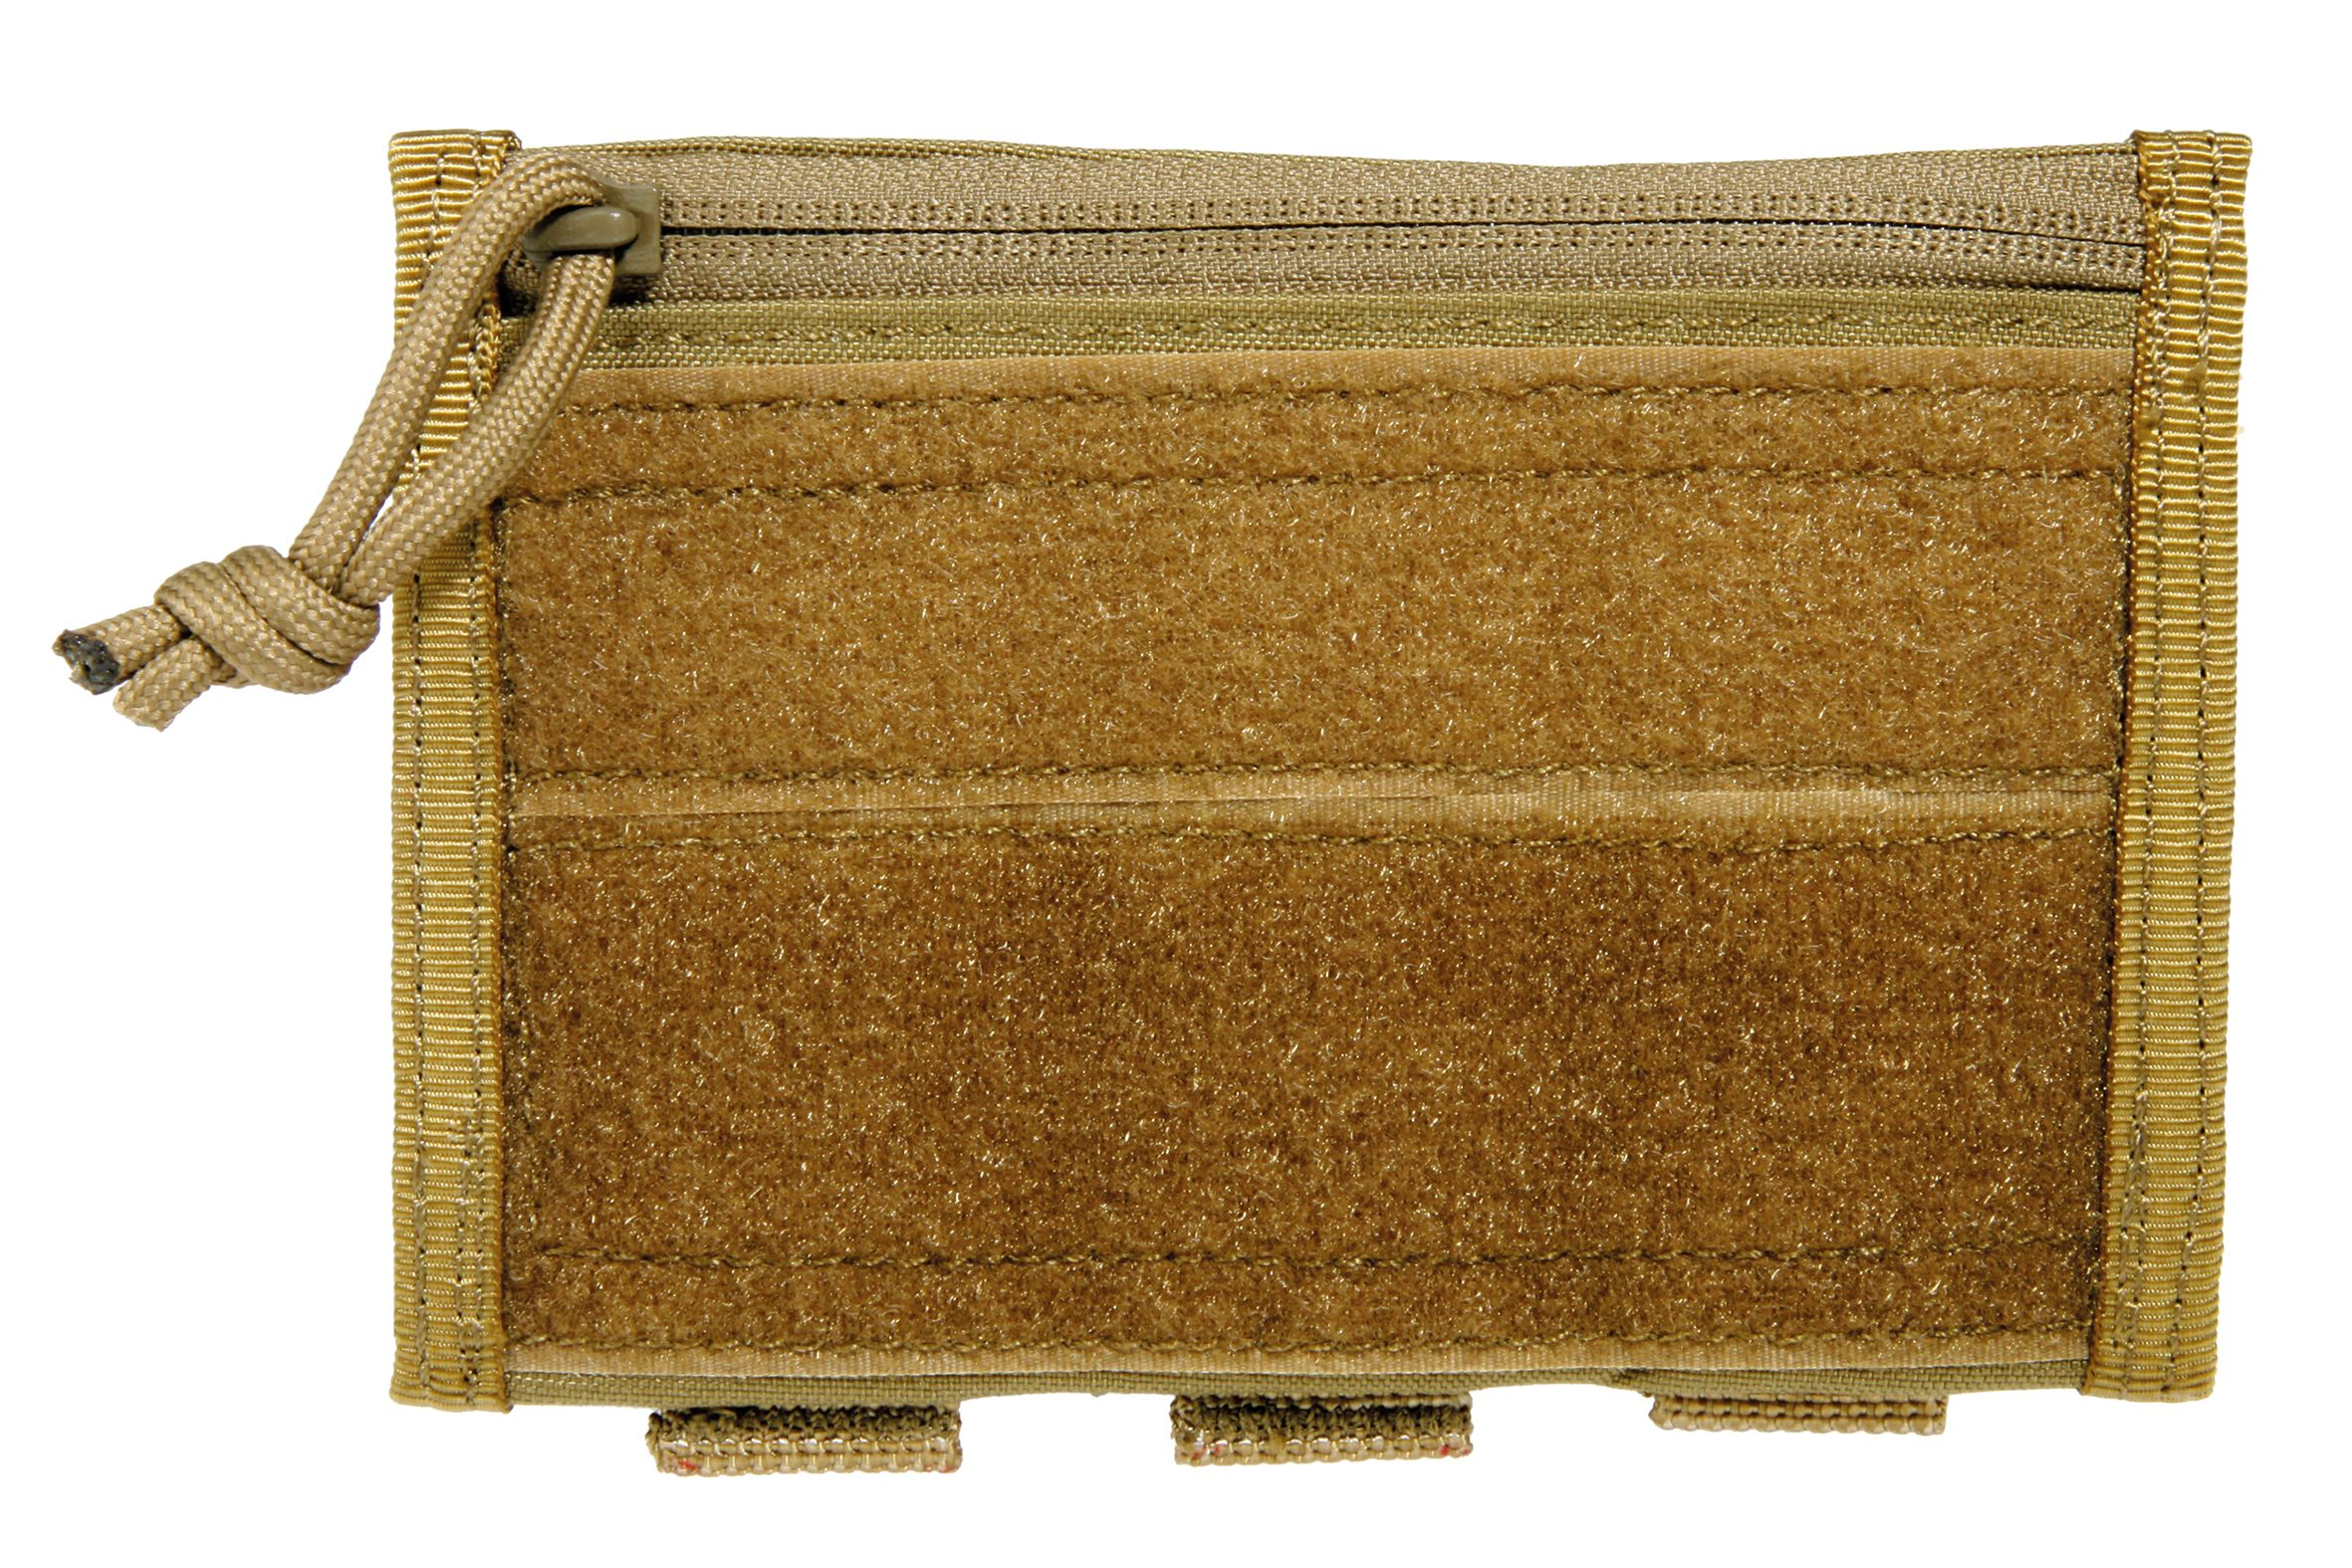 GERONIMO ULTRALITE DOCUMENTS POUCH WITH VELCRO TAN